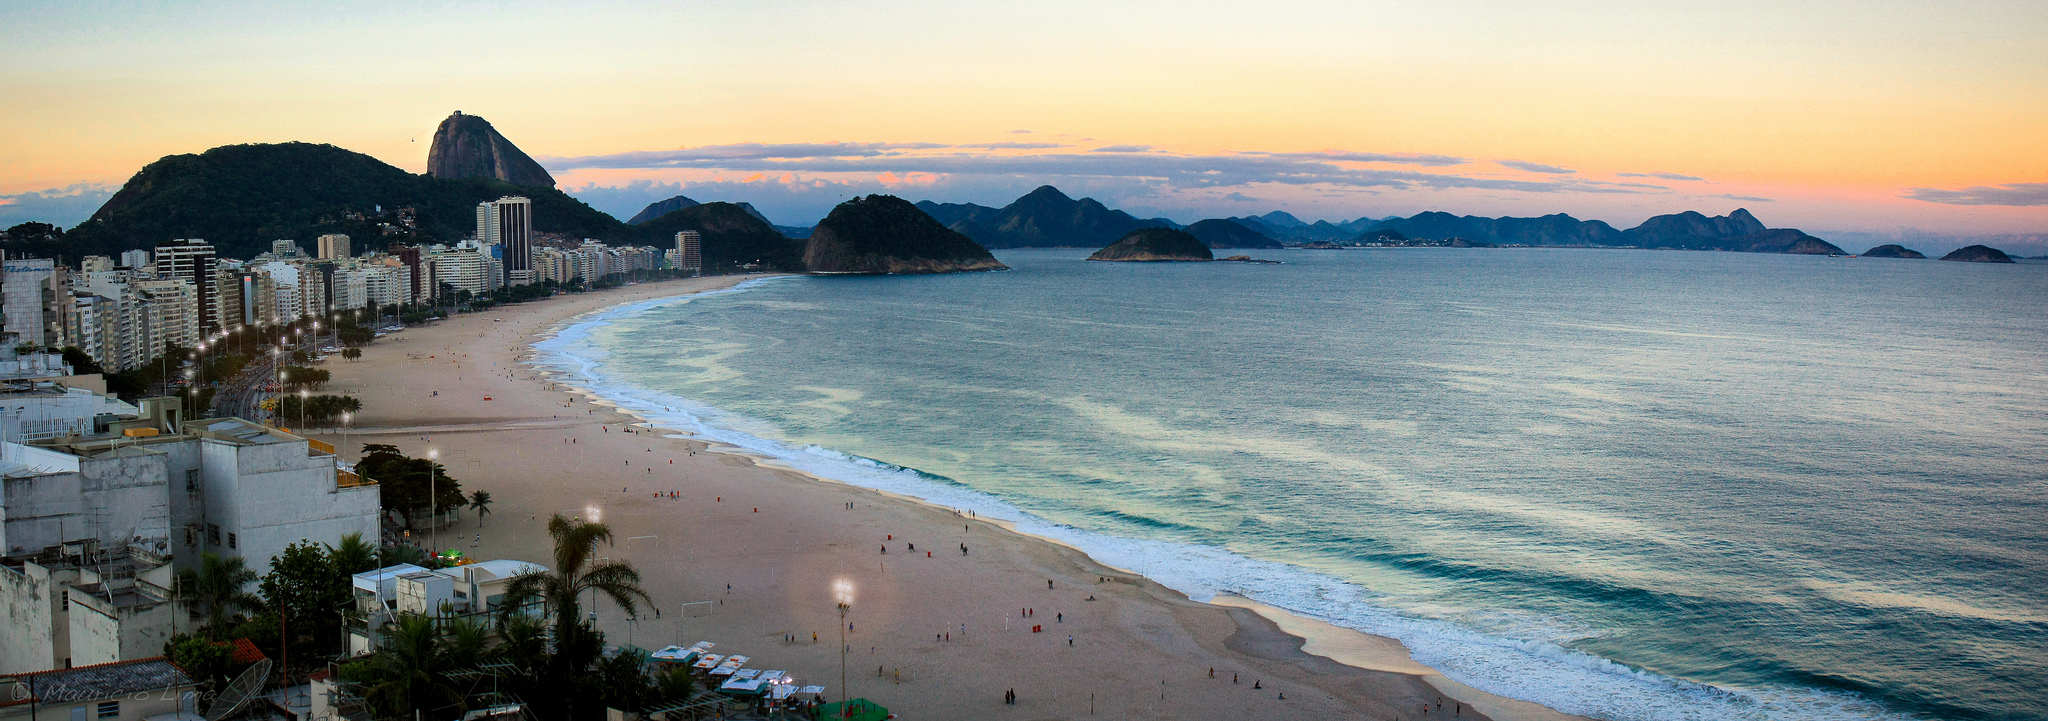 Copacabana, Rio de Janeiro, Brazil - photo by Lima Pix - used under Creative Commons license